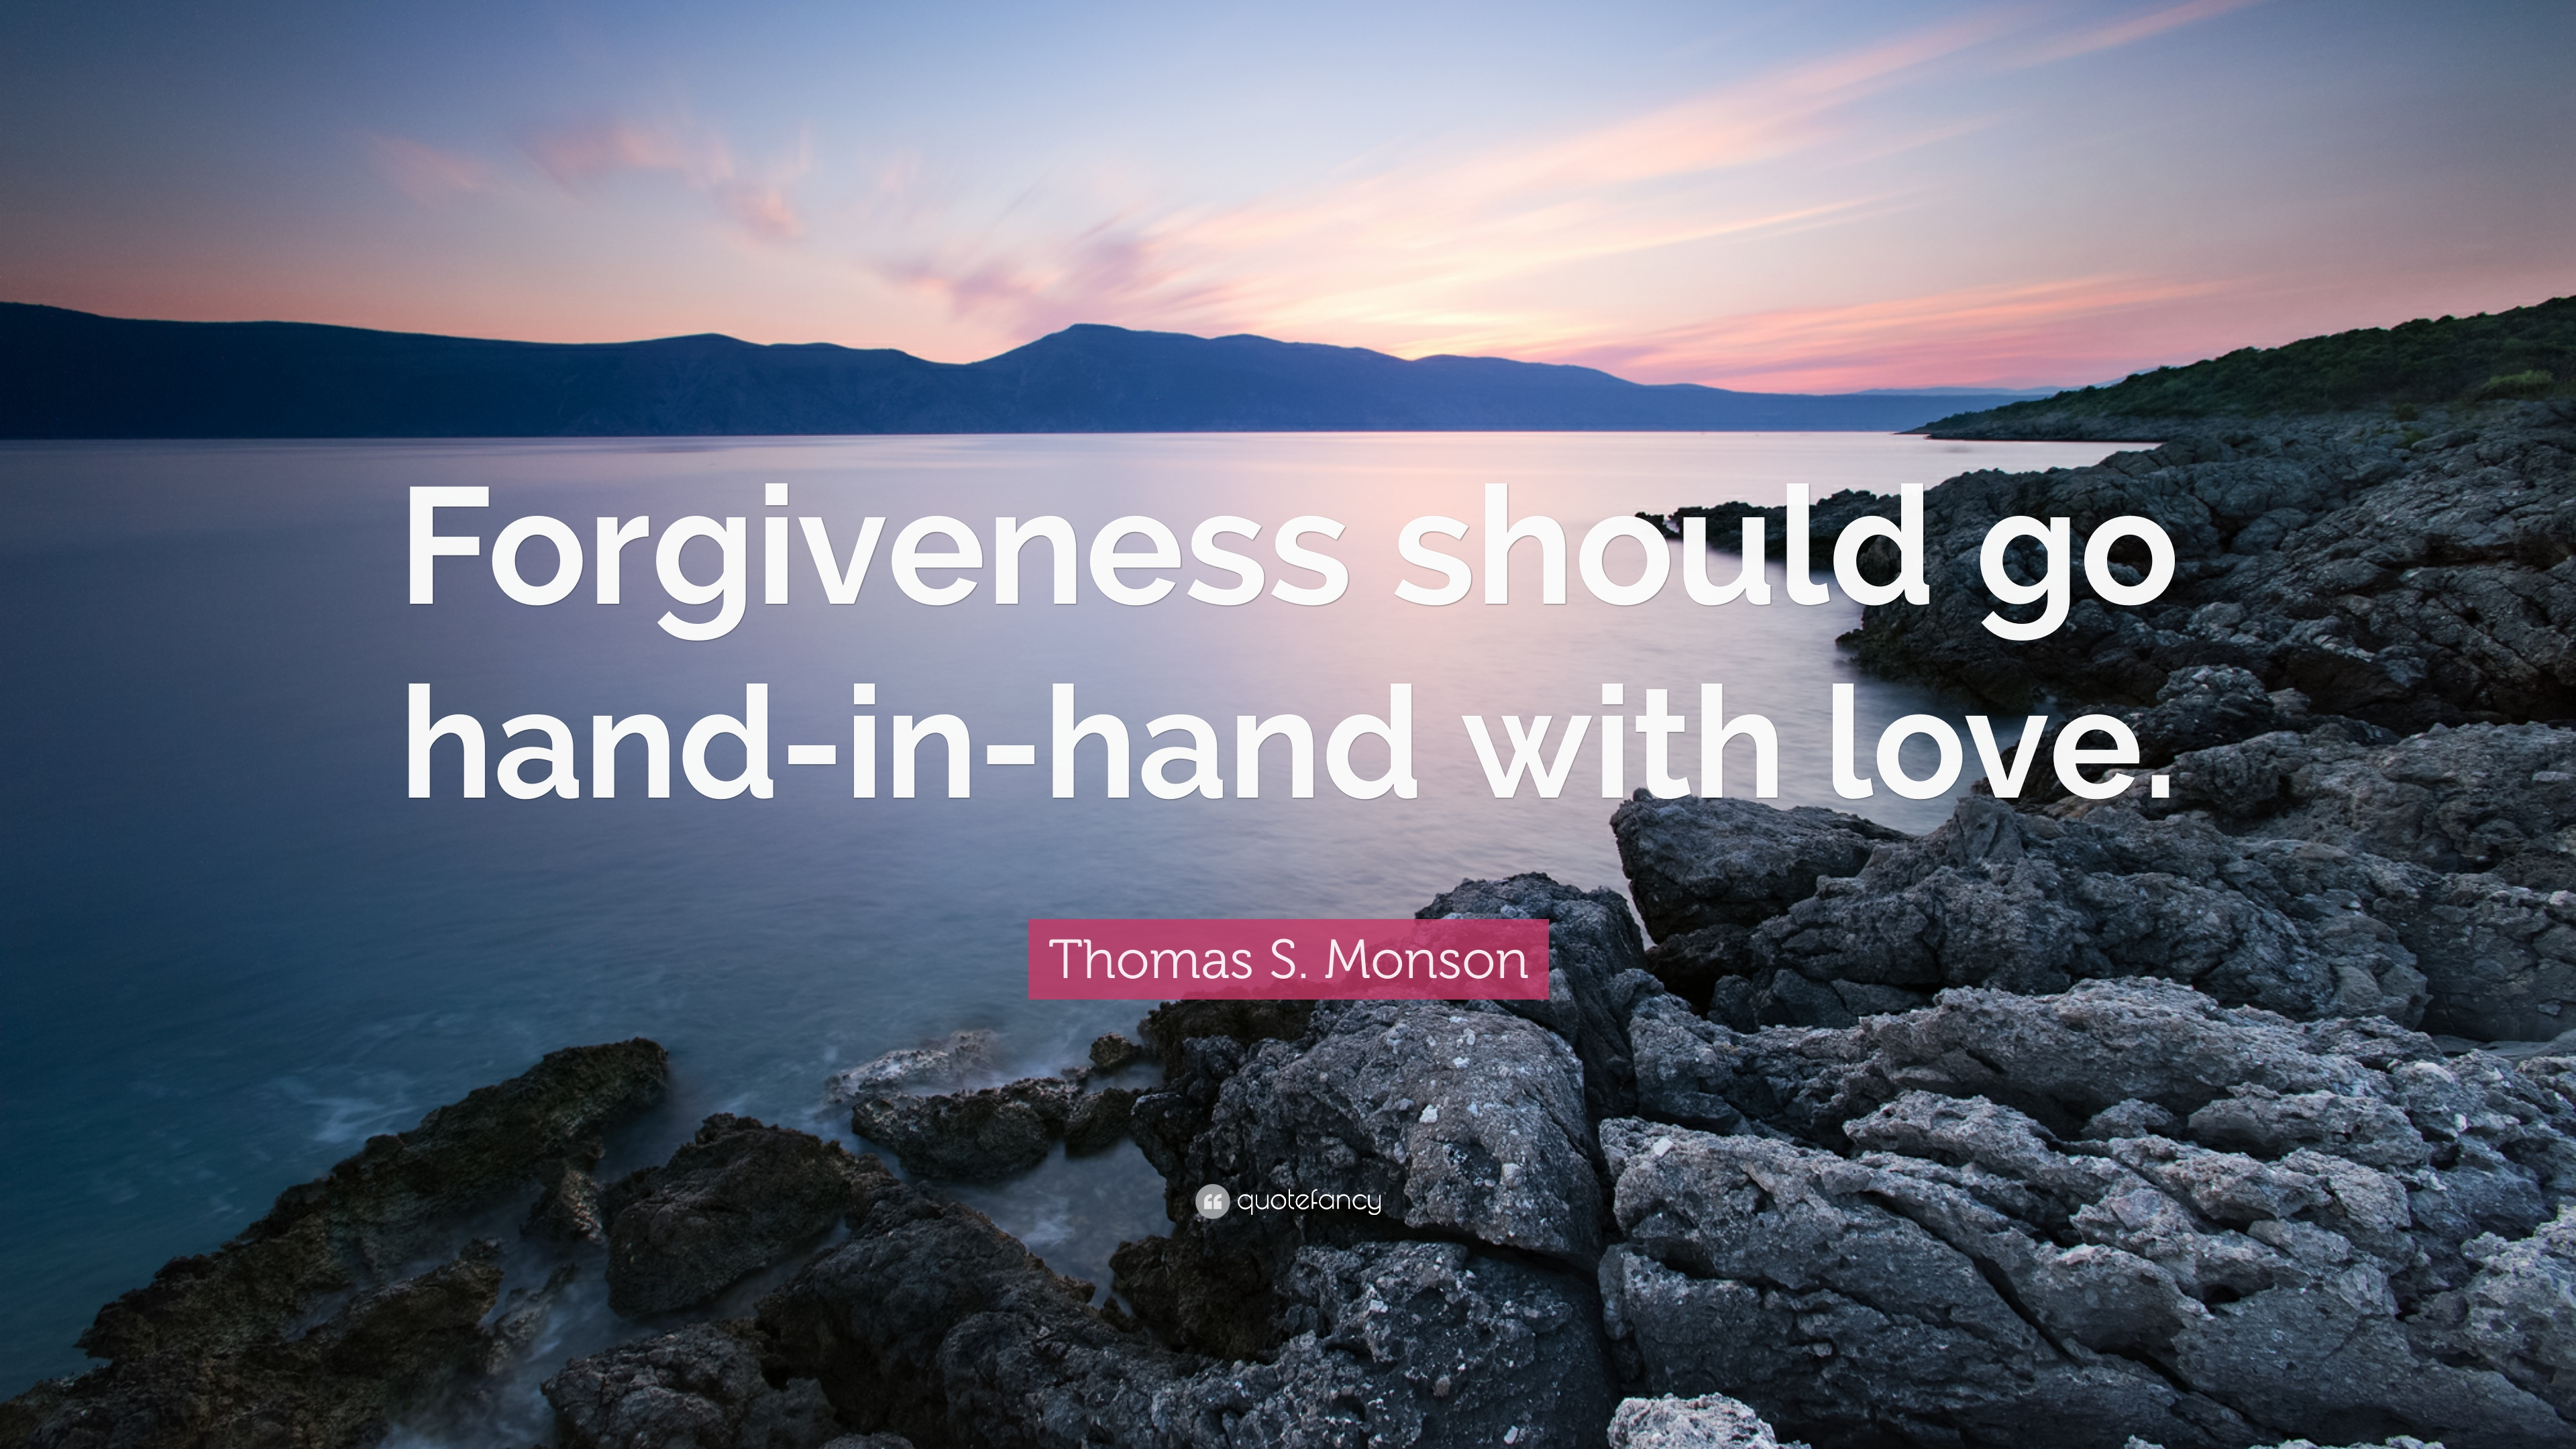 Thomas S Monson Quote Forgiveness Should Go Hand In Hand With